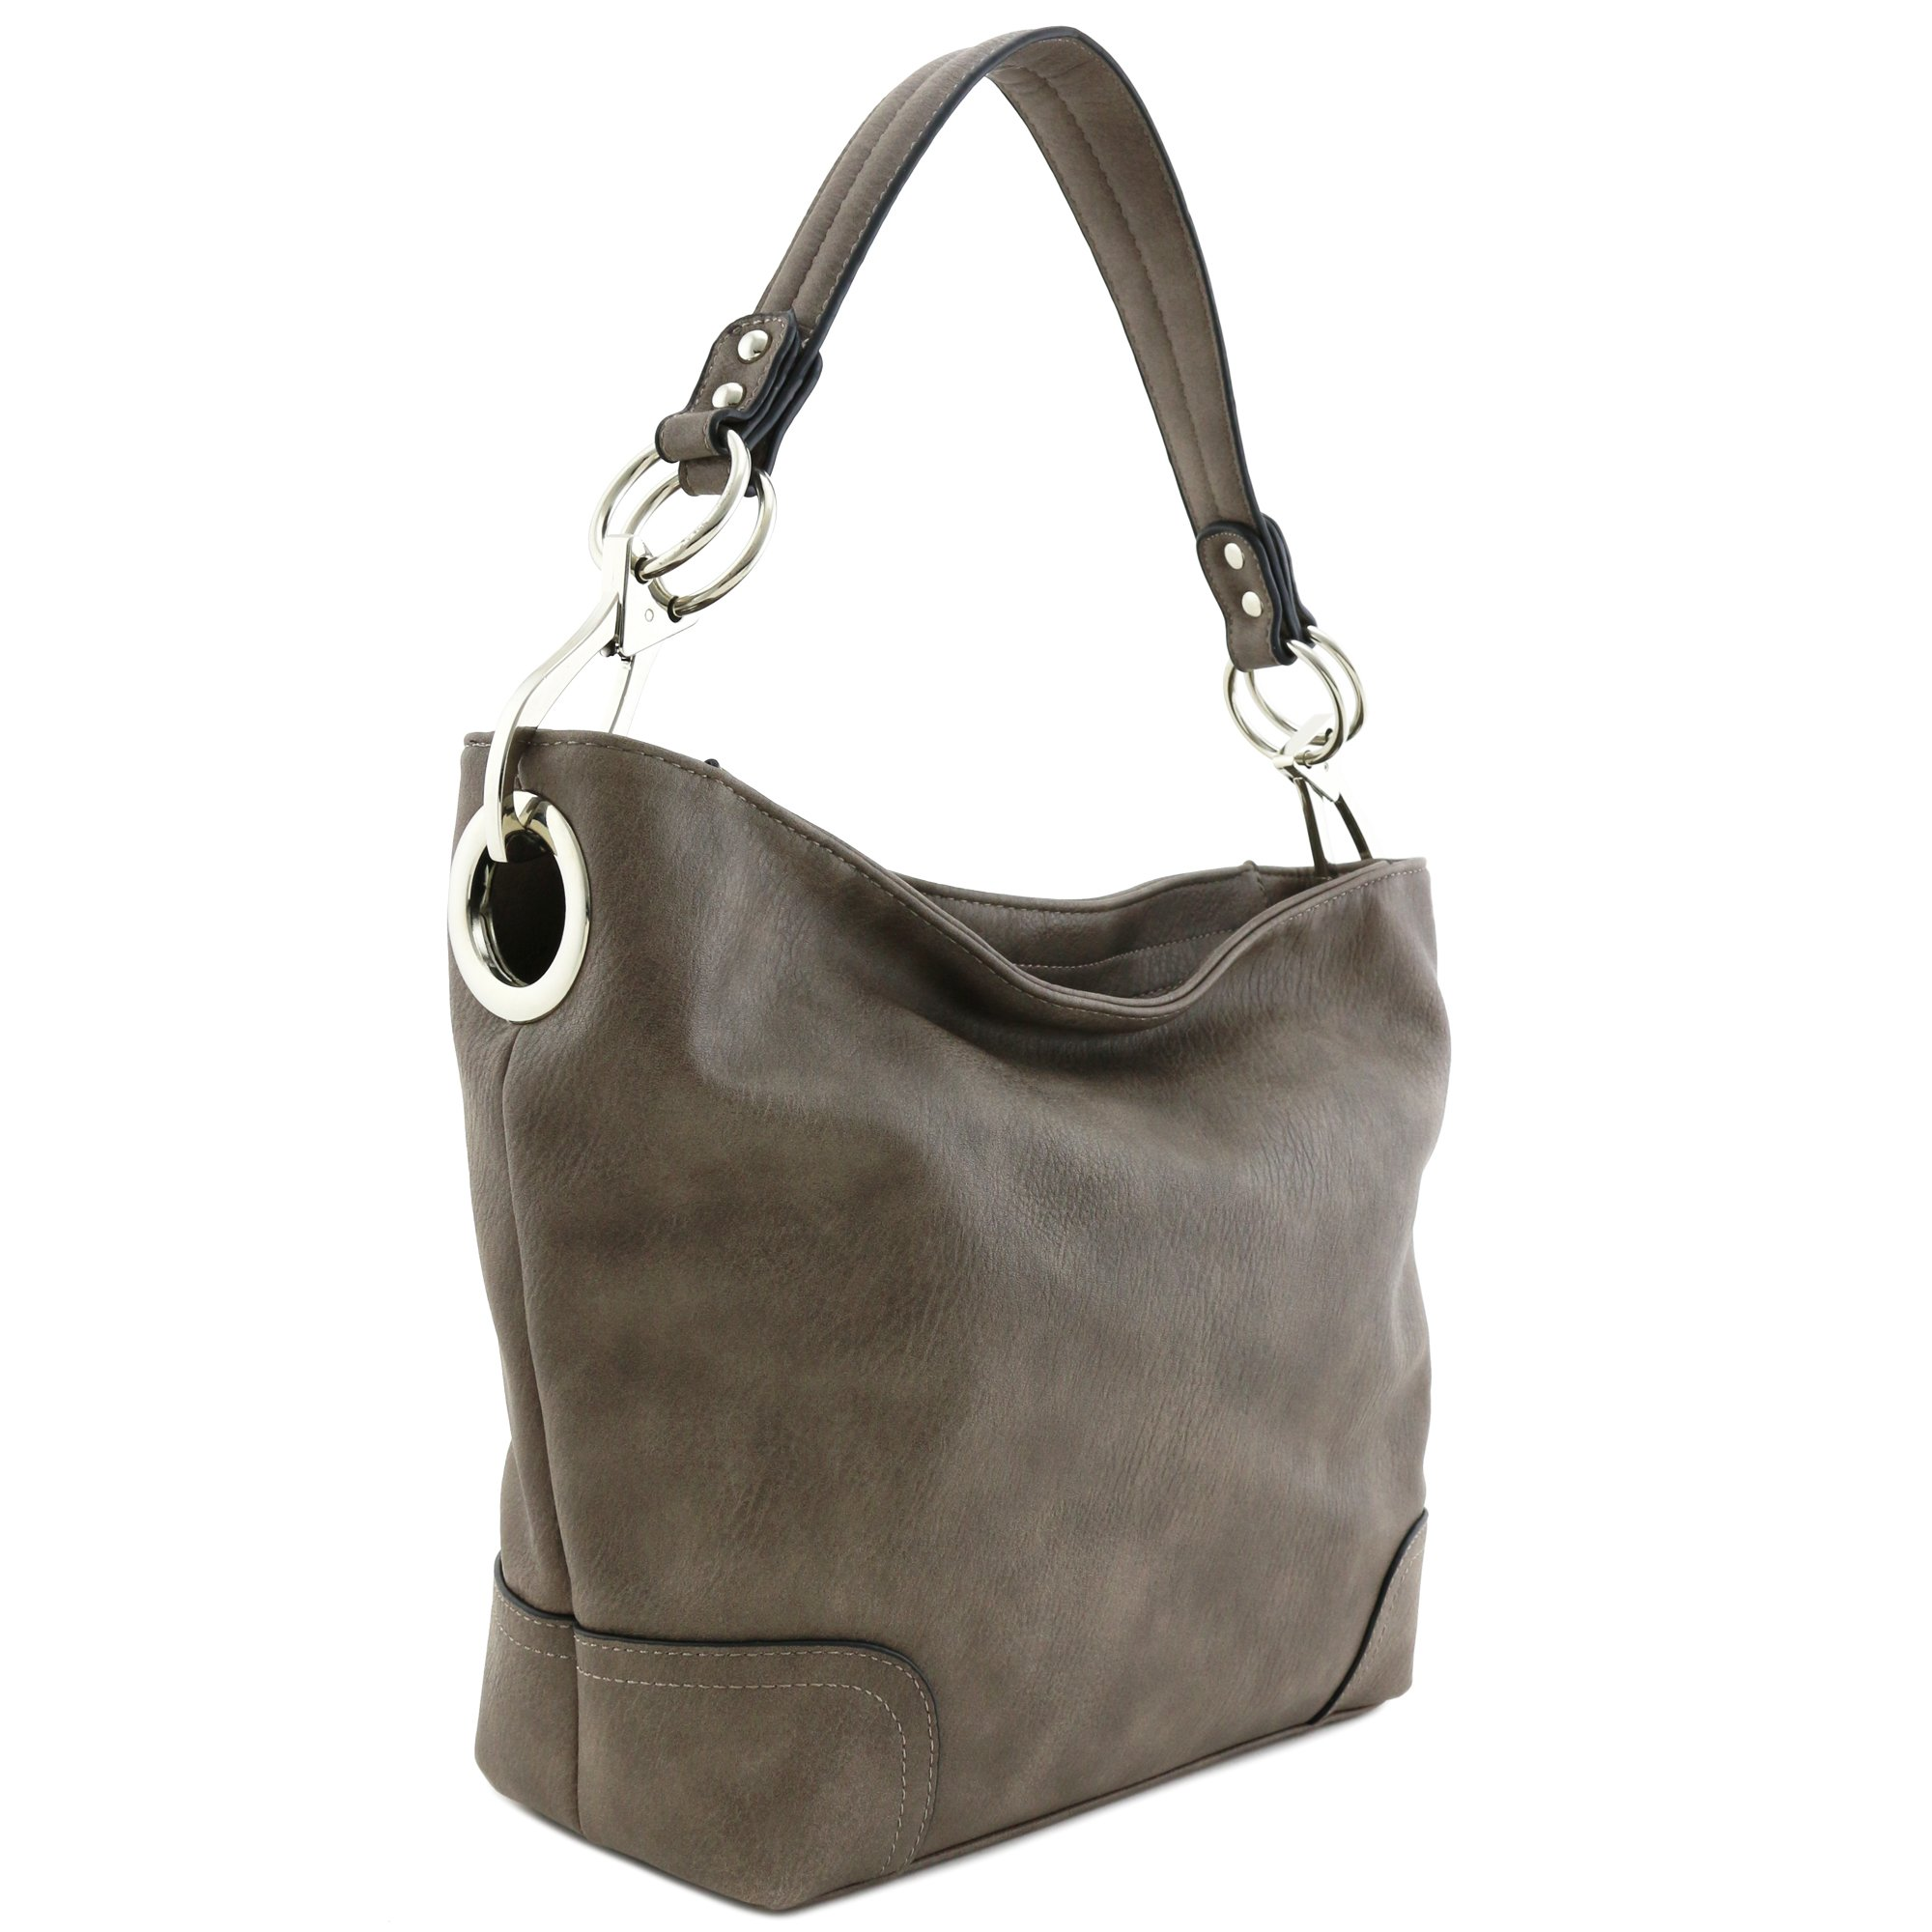 Hobo Shoulder Bag with Big Snap Hook Hardware (Light Coffee)